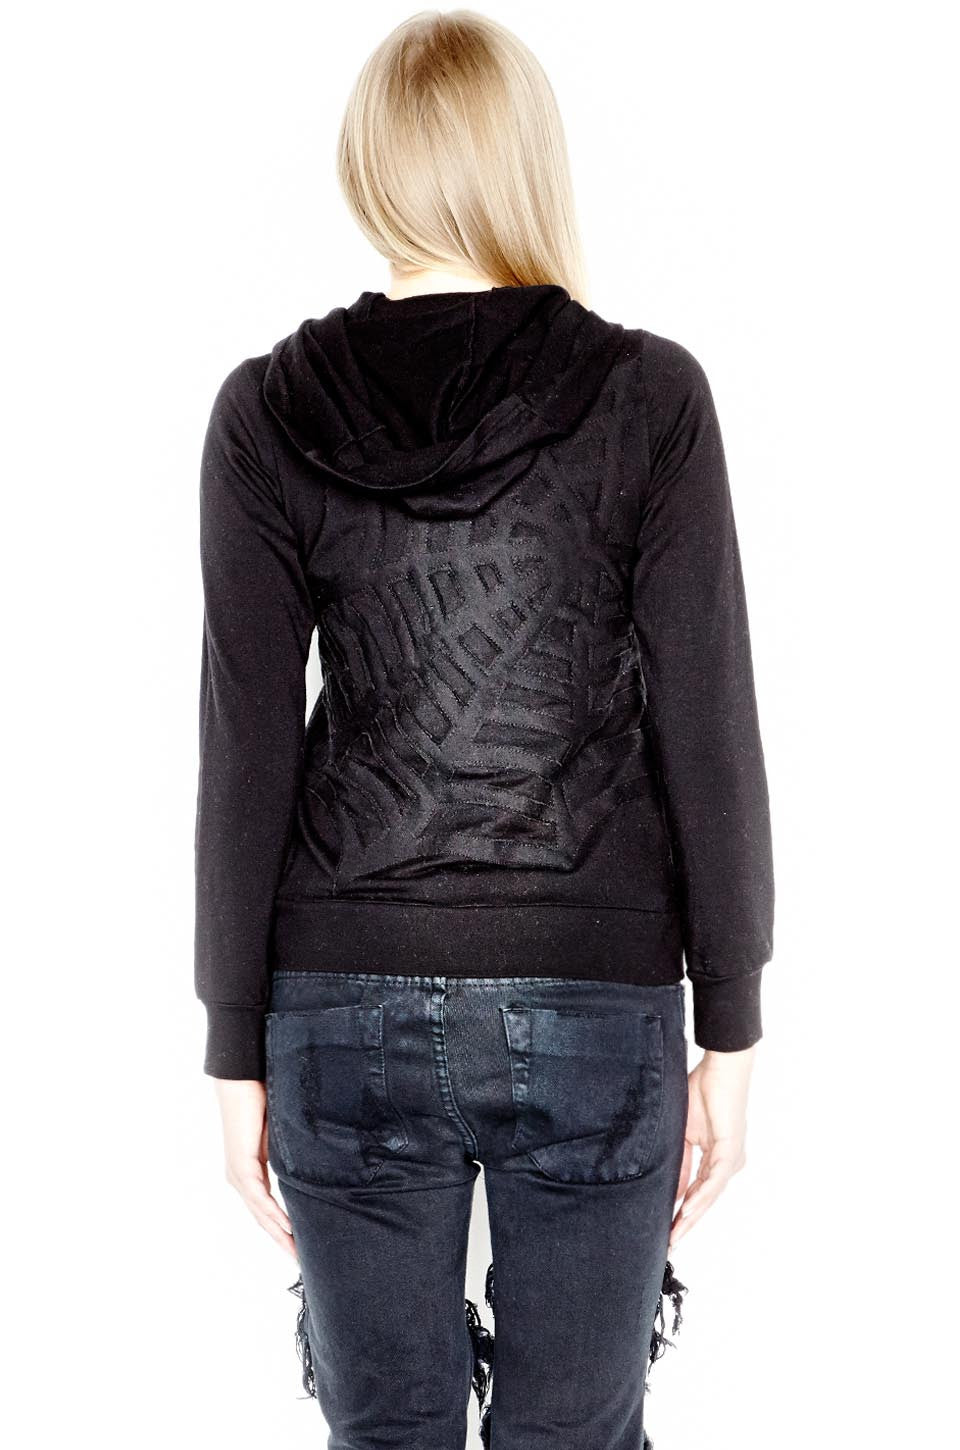 candy lrg web embroidery fitted zip up hoodie - s black